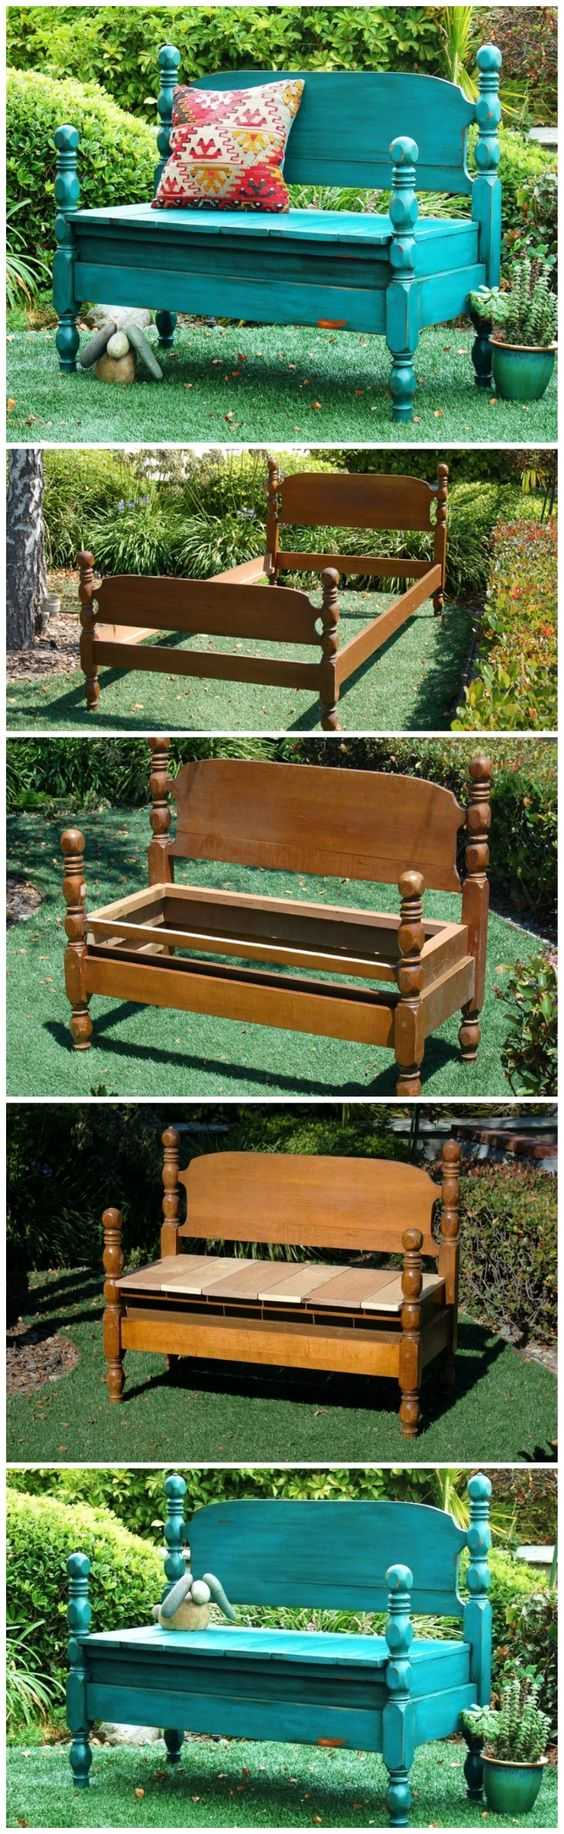 A garden bench creates a homely feeling in an outdoor space. Take a look at this one, re-purposed from an old bed into a rustic bench via Healthy Home & Kitchen